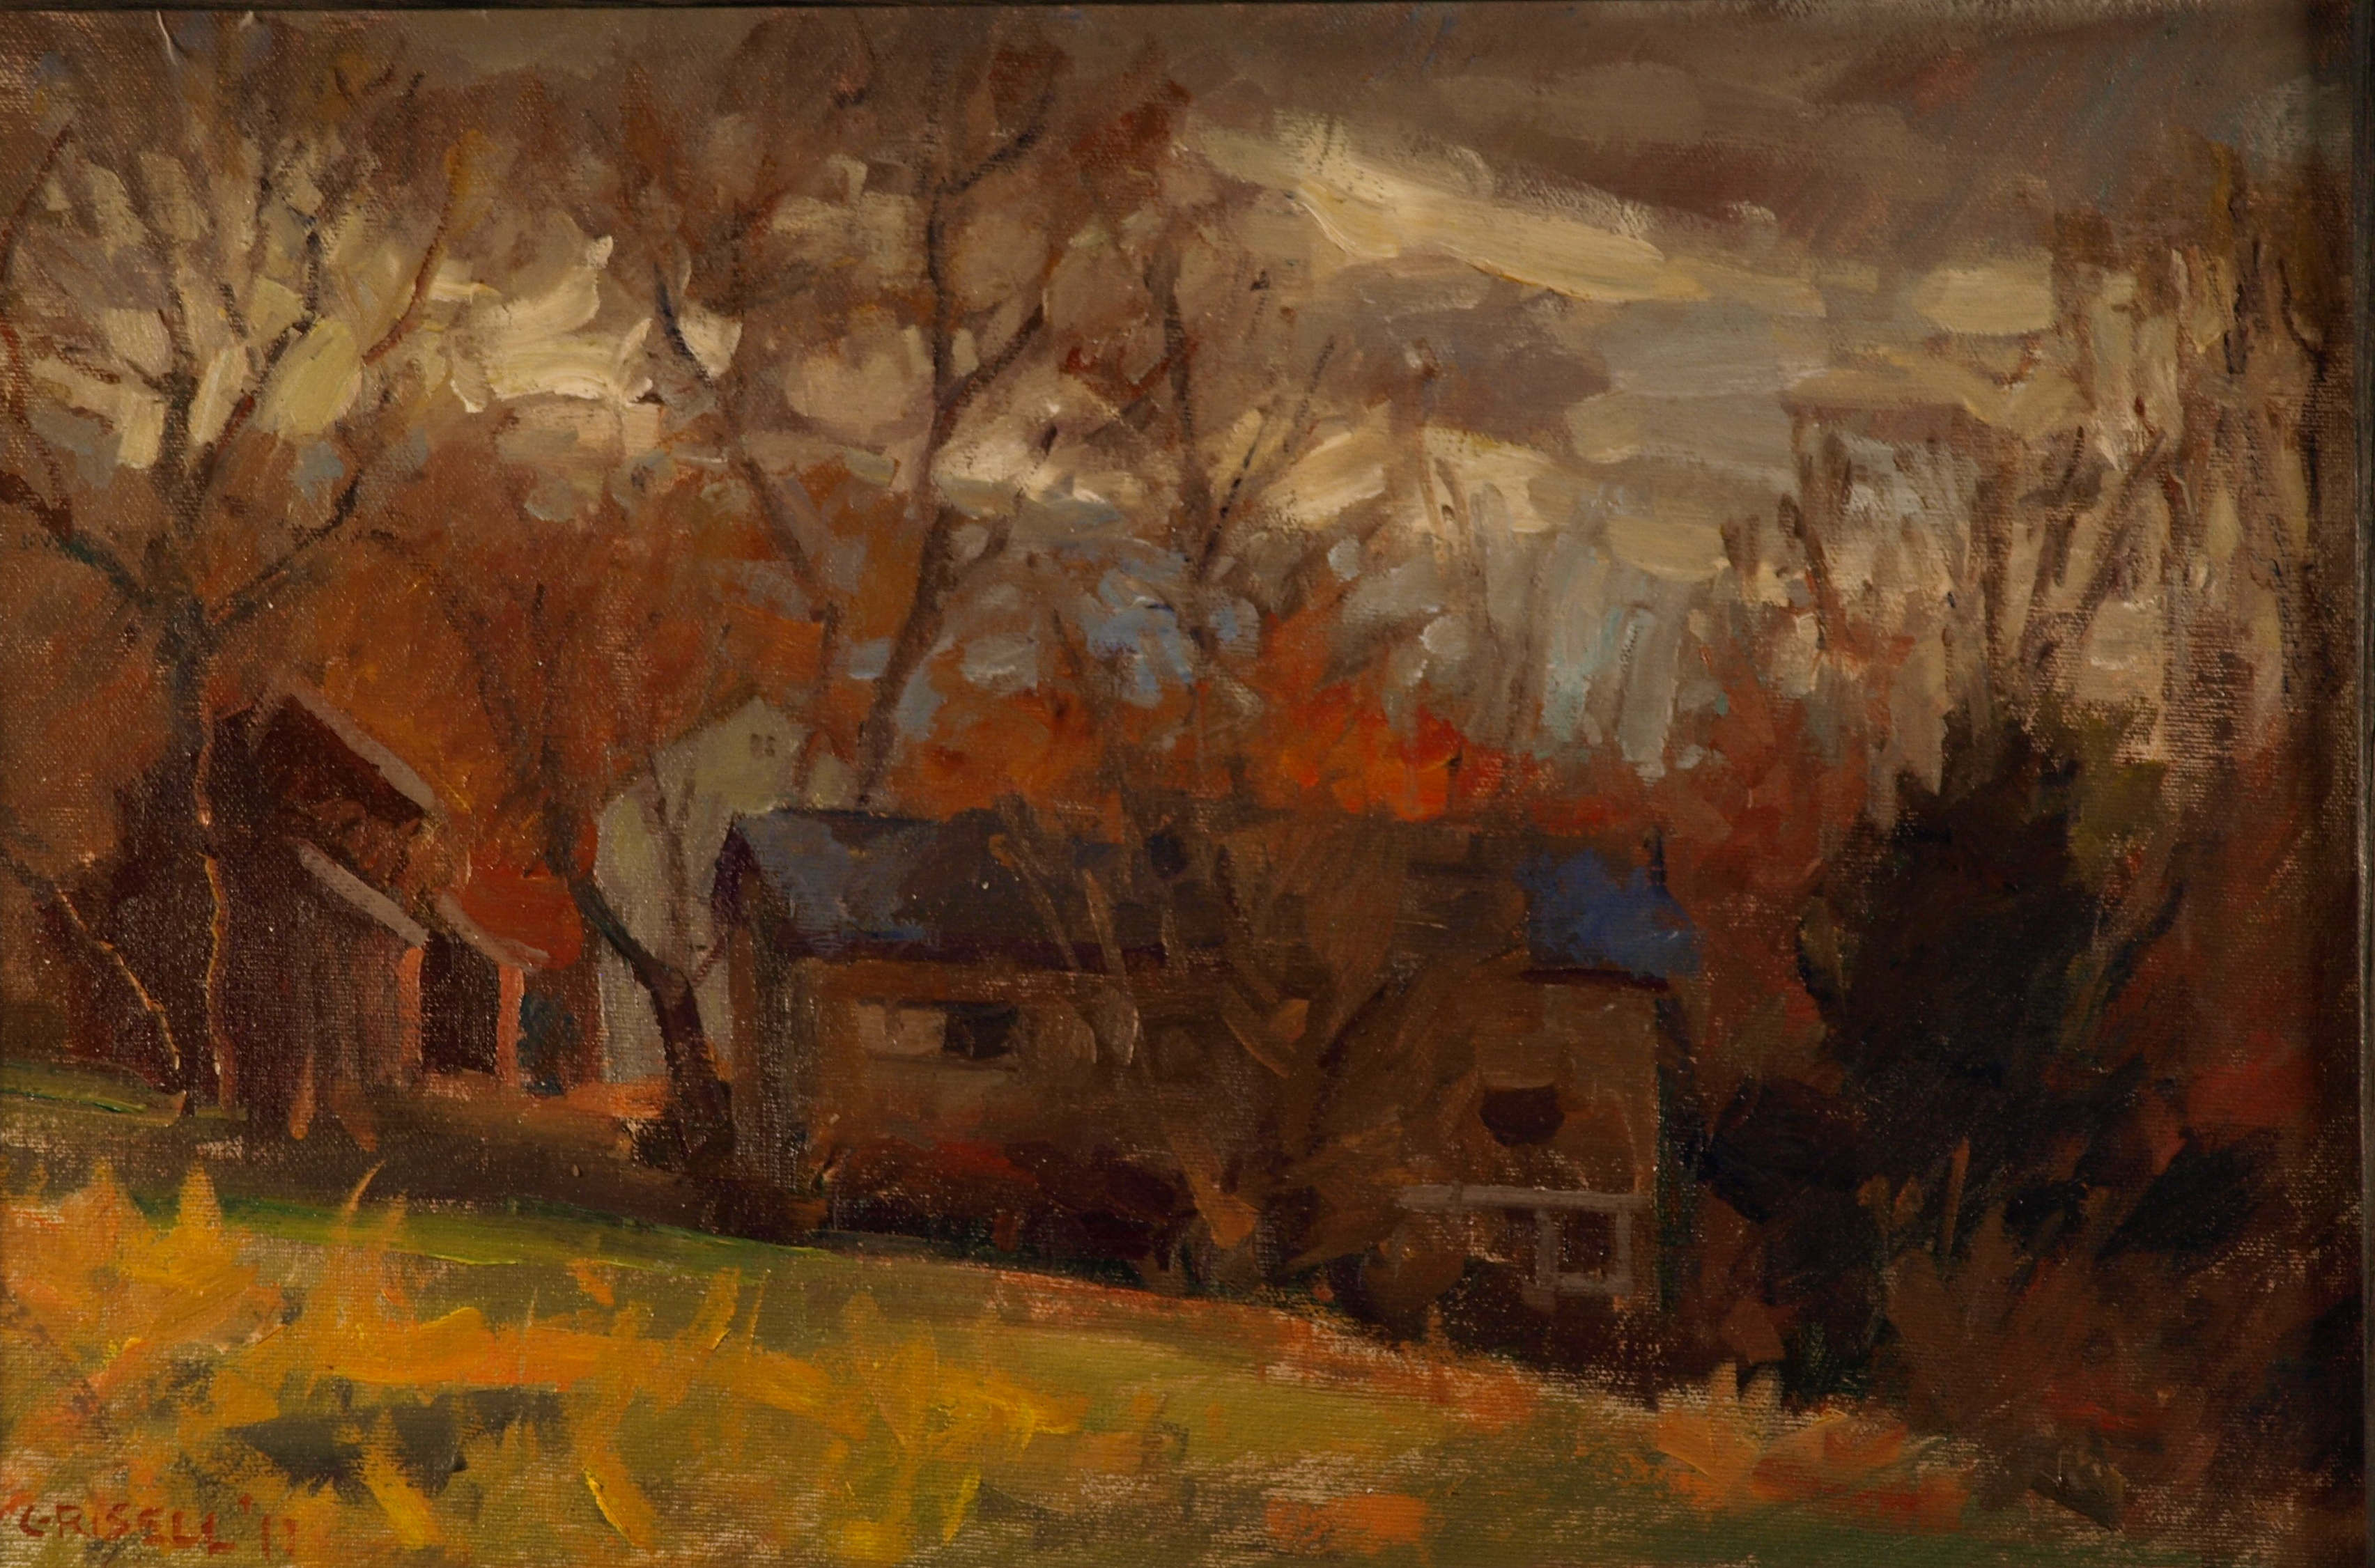 Dark Clouds, Oil on Canvas on Panel, 12 x 18 Inches, by Susan Grisell, $275